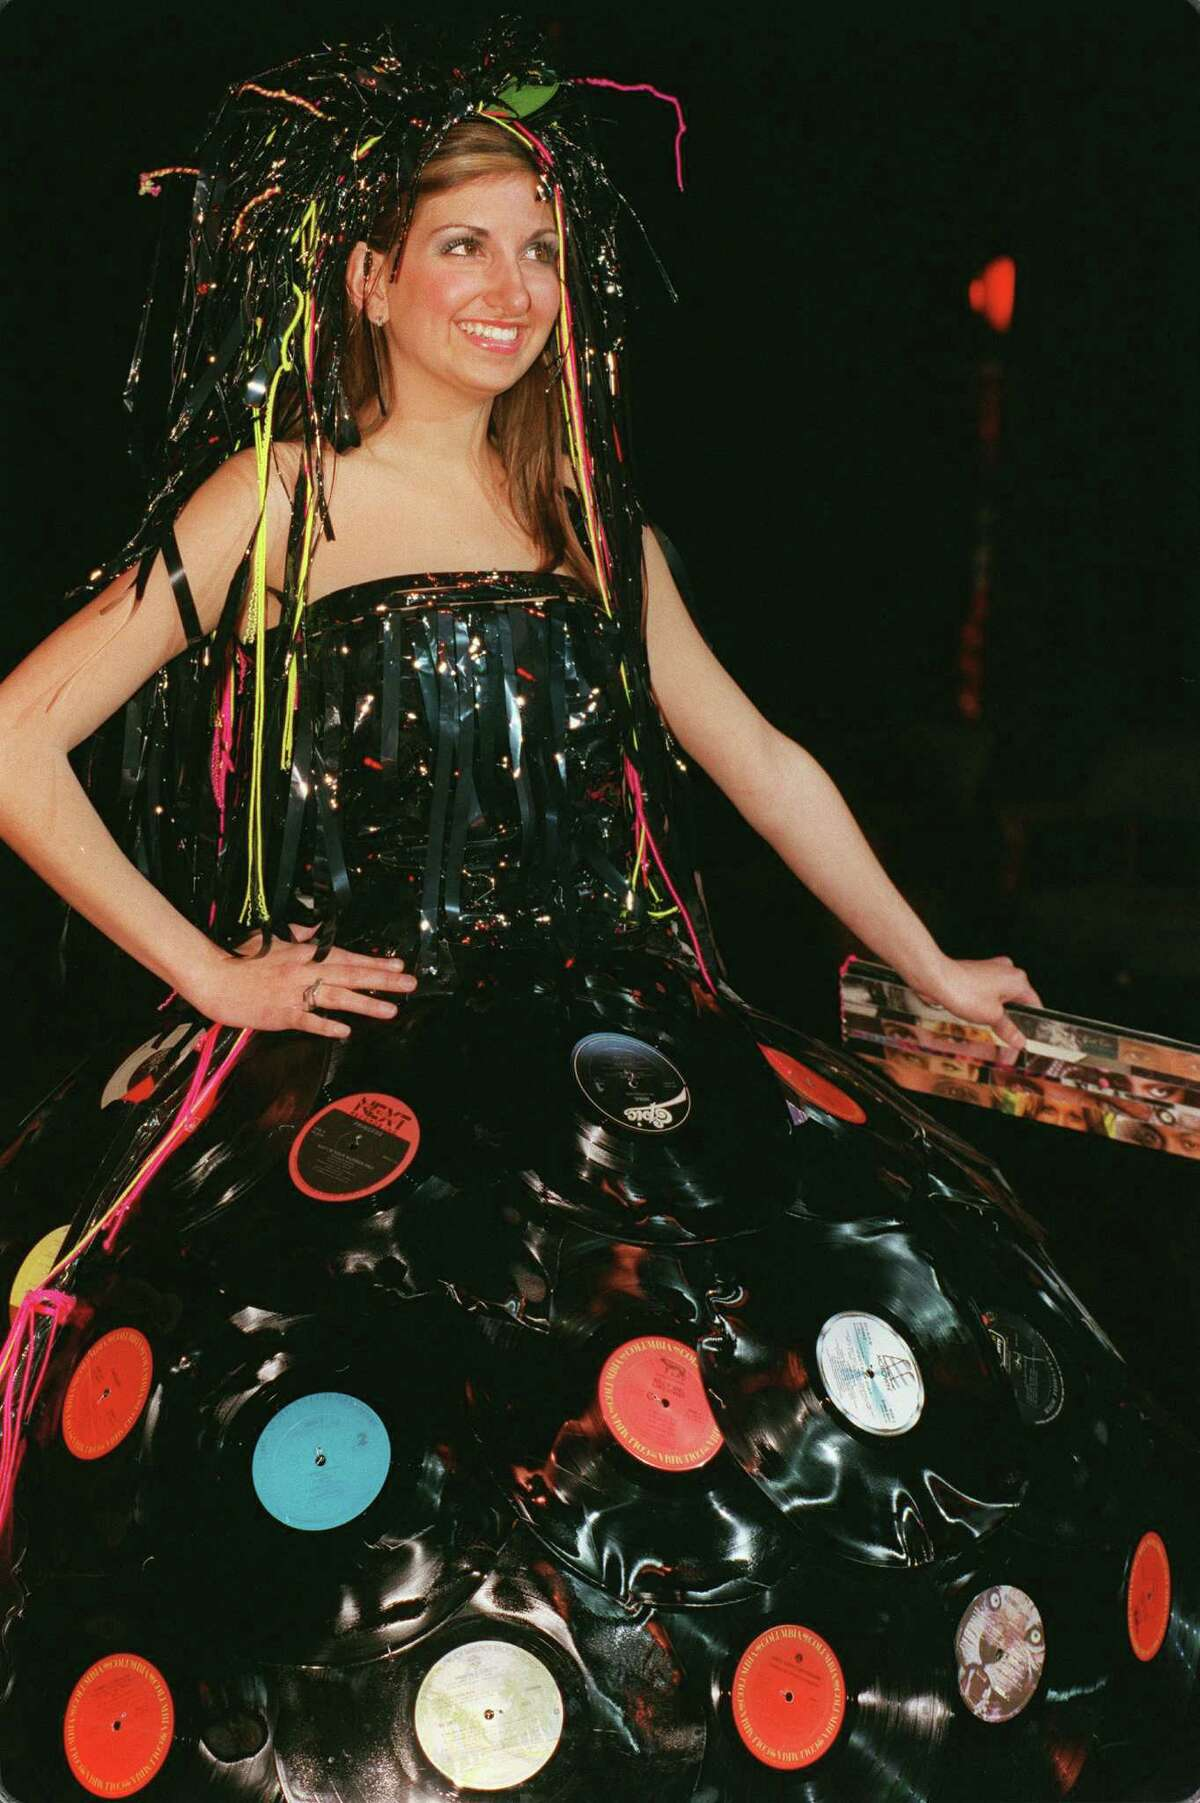 """From a file photo, a model wears the""""Video Killed the Radio Star"""" bellum skirt made from record albums melted together for the Flash & Trash fashion show is a design contest of garments made from recycled materials."""